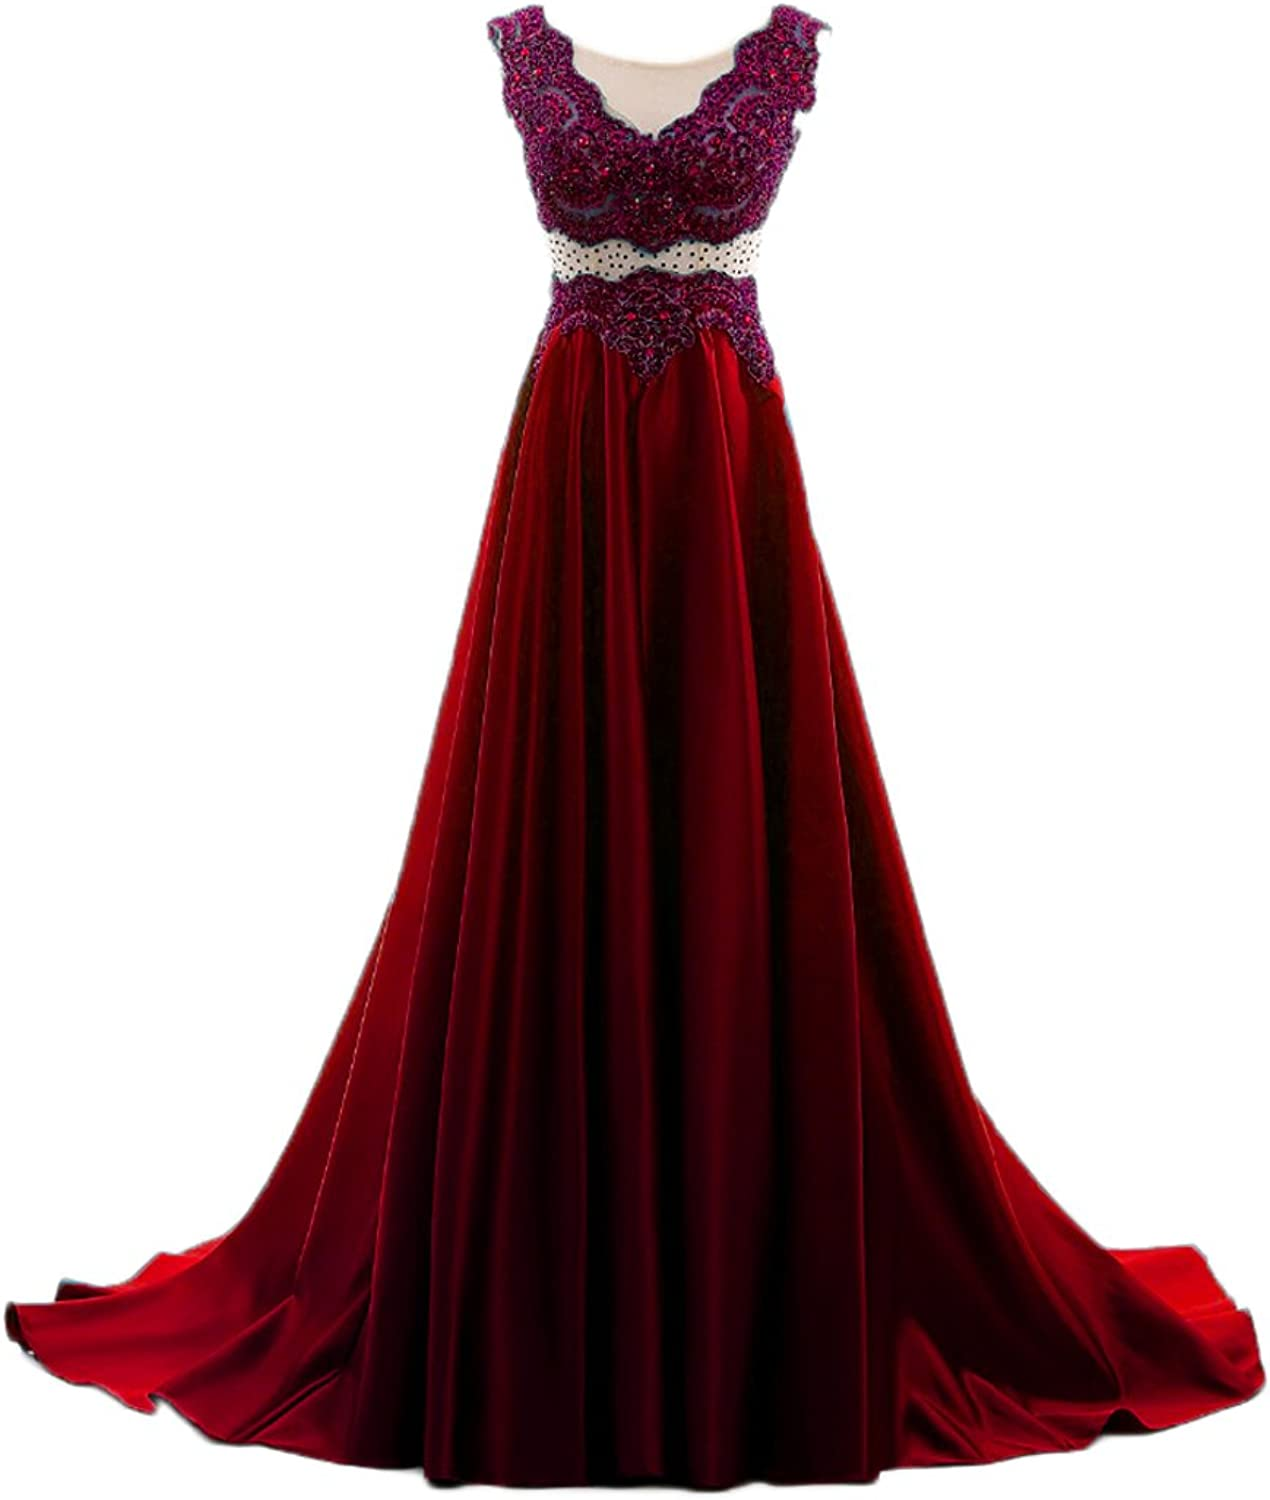 Liaoye Women's Lace Beaded Evening Gowns A Line Illusion Waist Long Party Dress